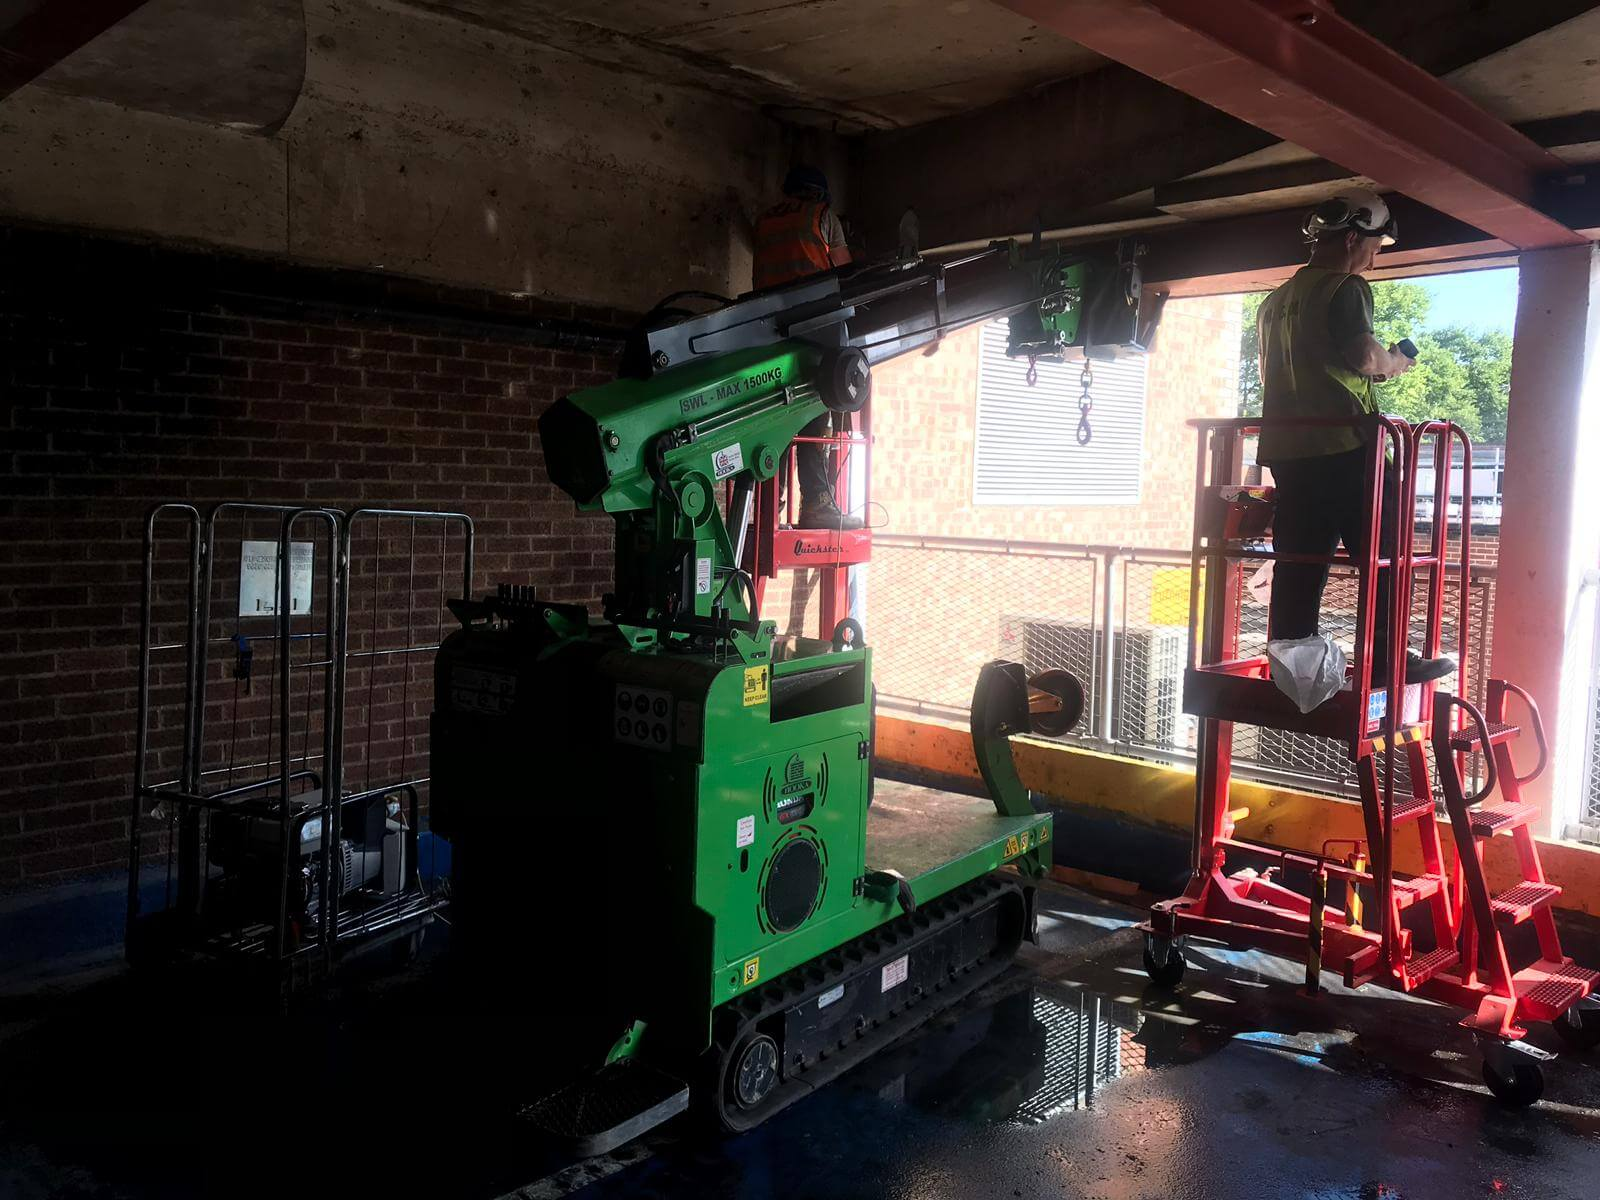 Hooka on hire installing steel I-beams in Gloucester, lift and carry crawler crane tracked forklift